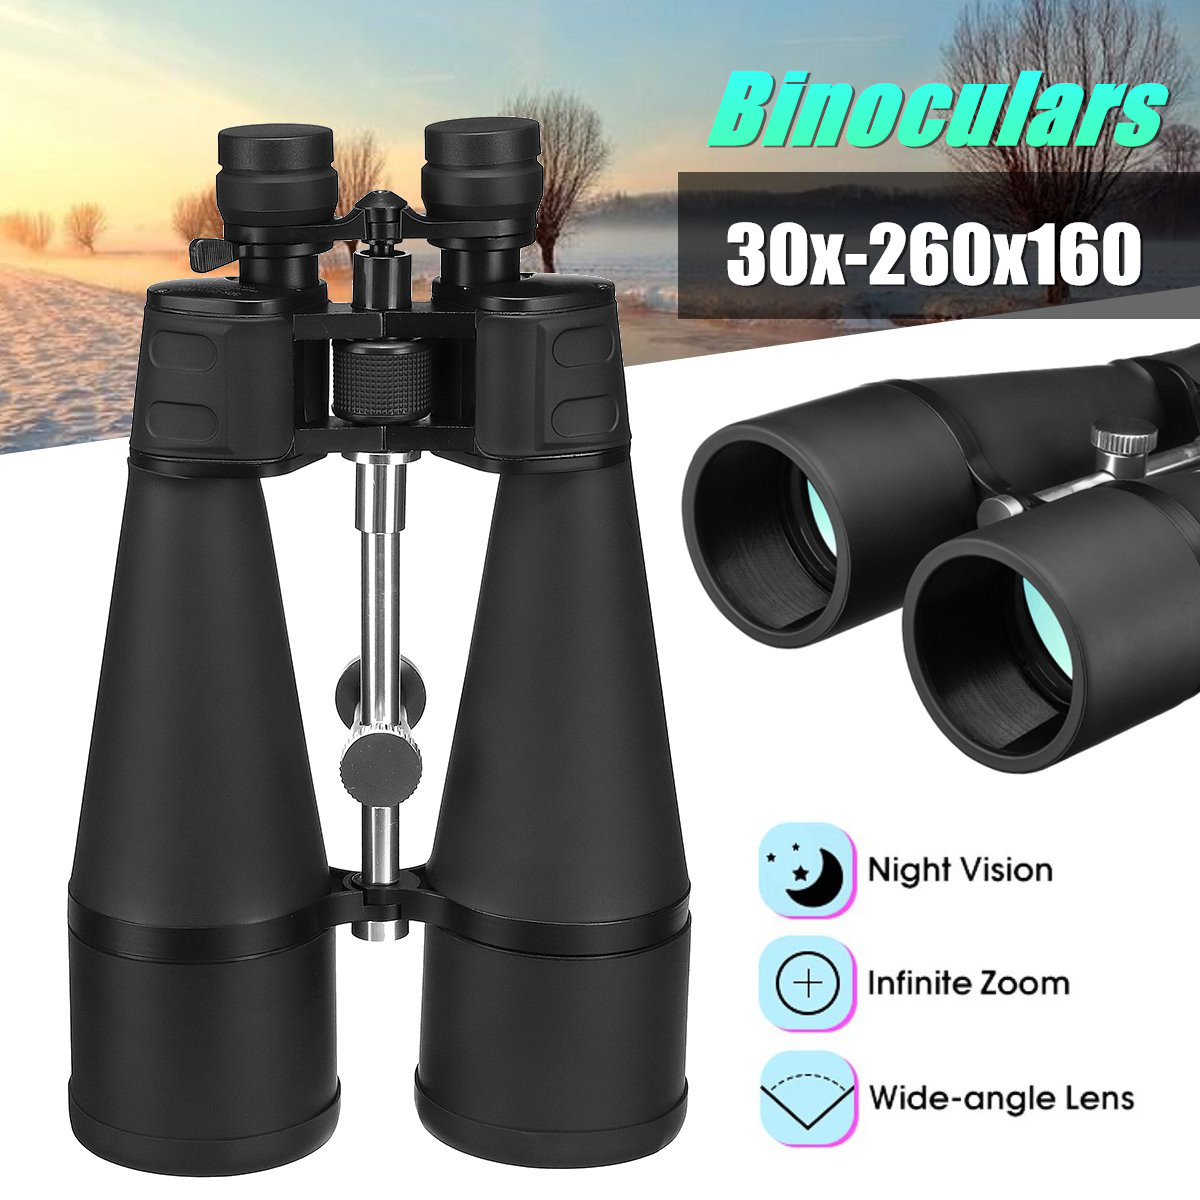 Optical Green Lens Binoculars 30x-260x160 High Magnification Long Range Zoom Objective Diameter 160mm+lens Cloth doumoo 330 330 mm long focal length 2000 mm fresnel lens for solar energy collection plastic optical fresnel lens pmma material